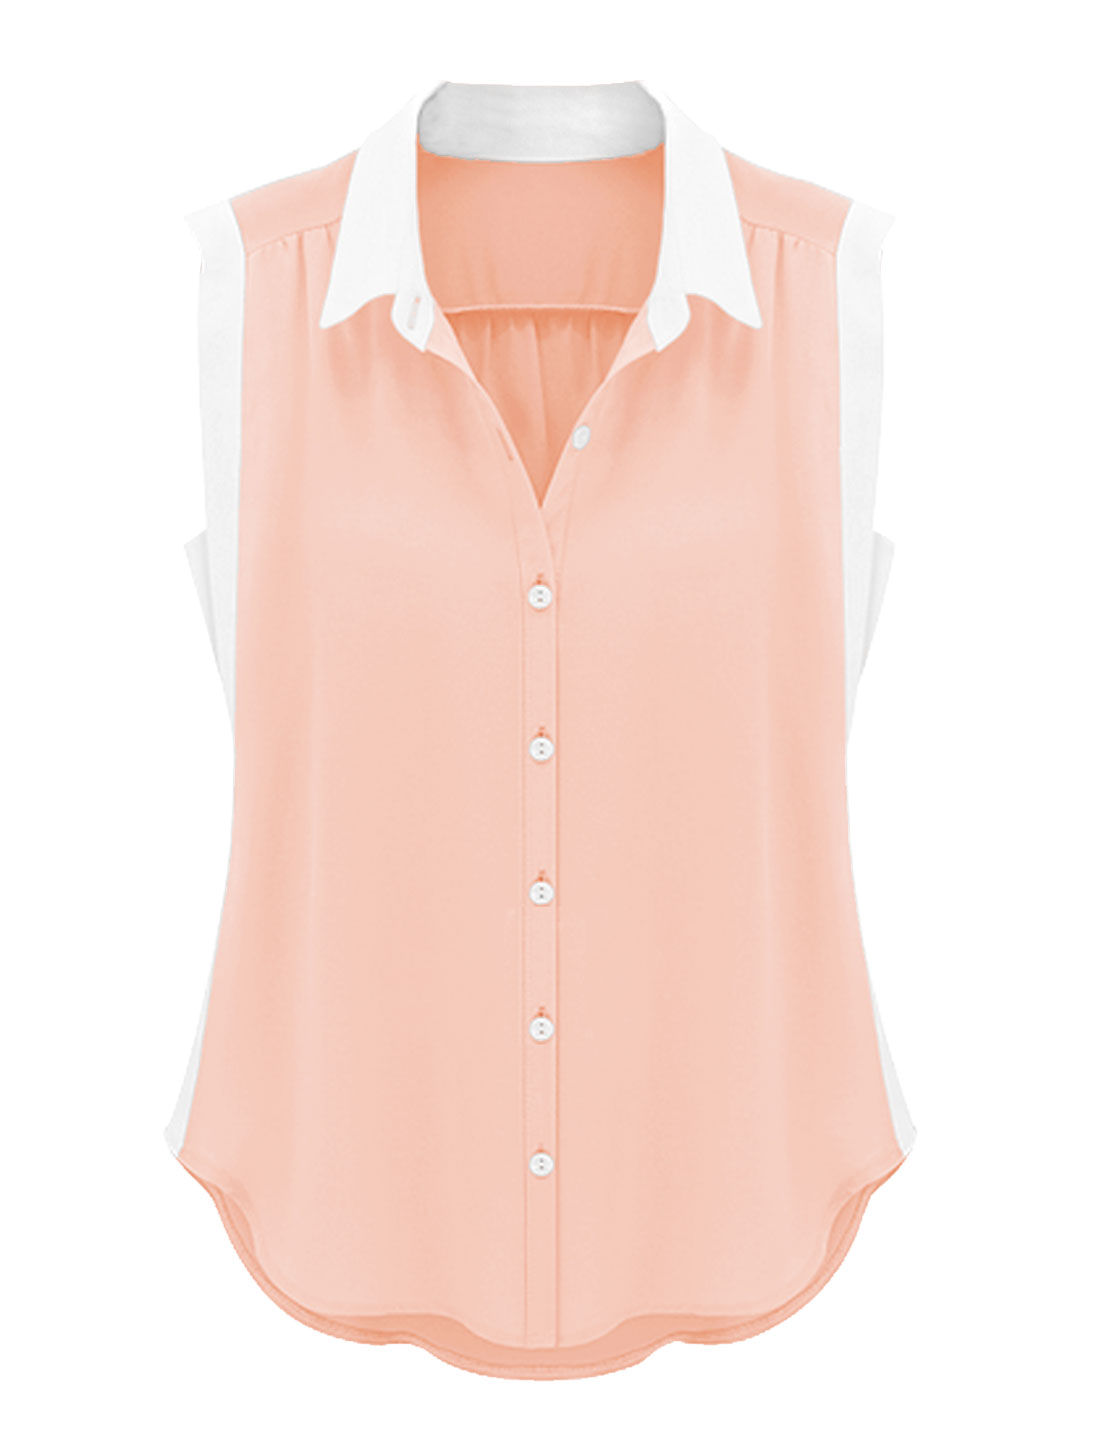 Lady Leisure Point Collar Single Breasted Shirt Light Salmon L